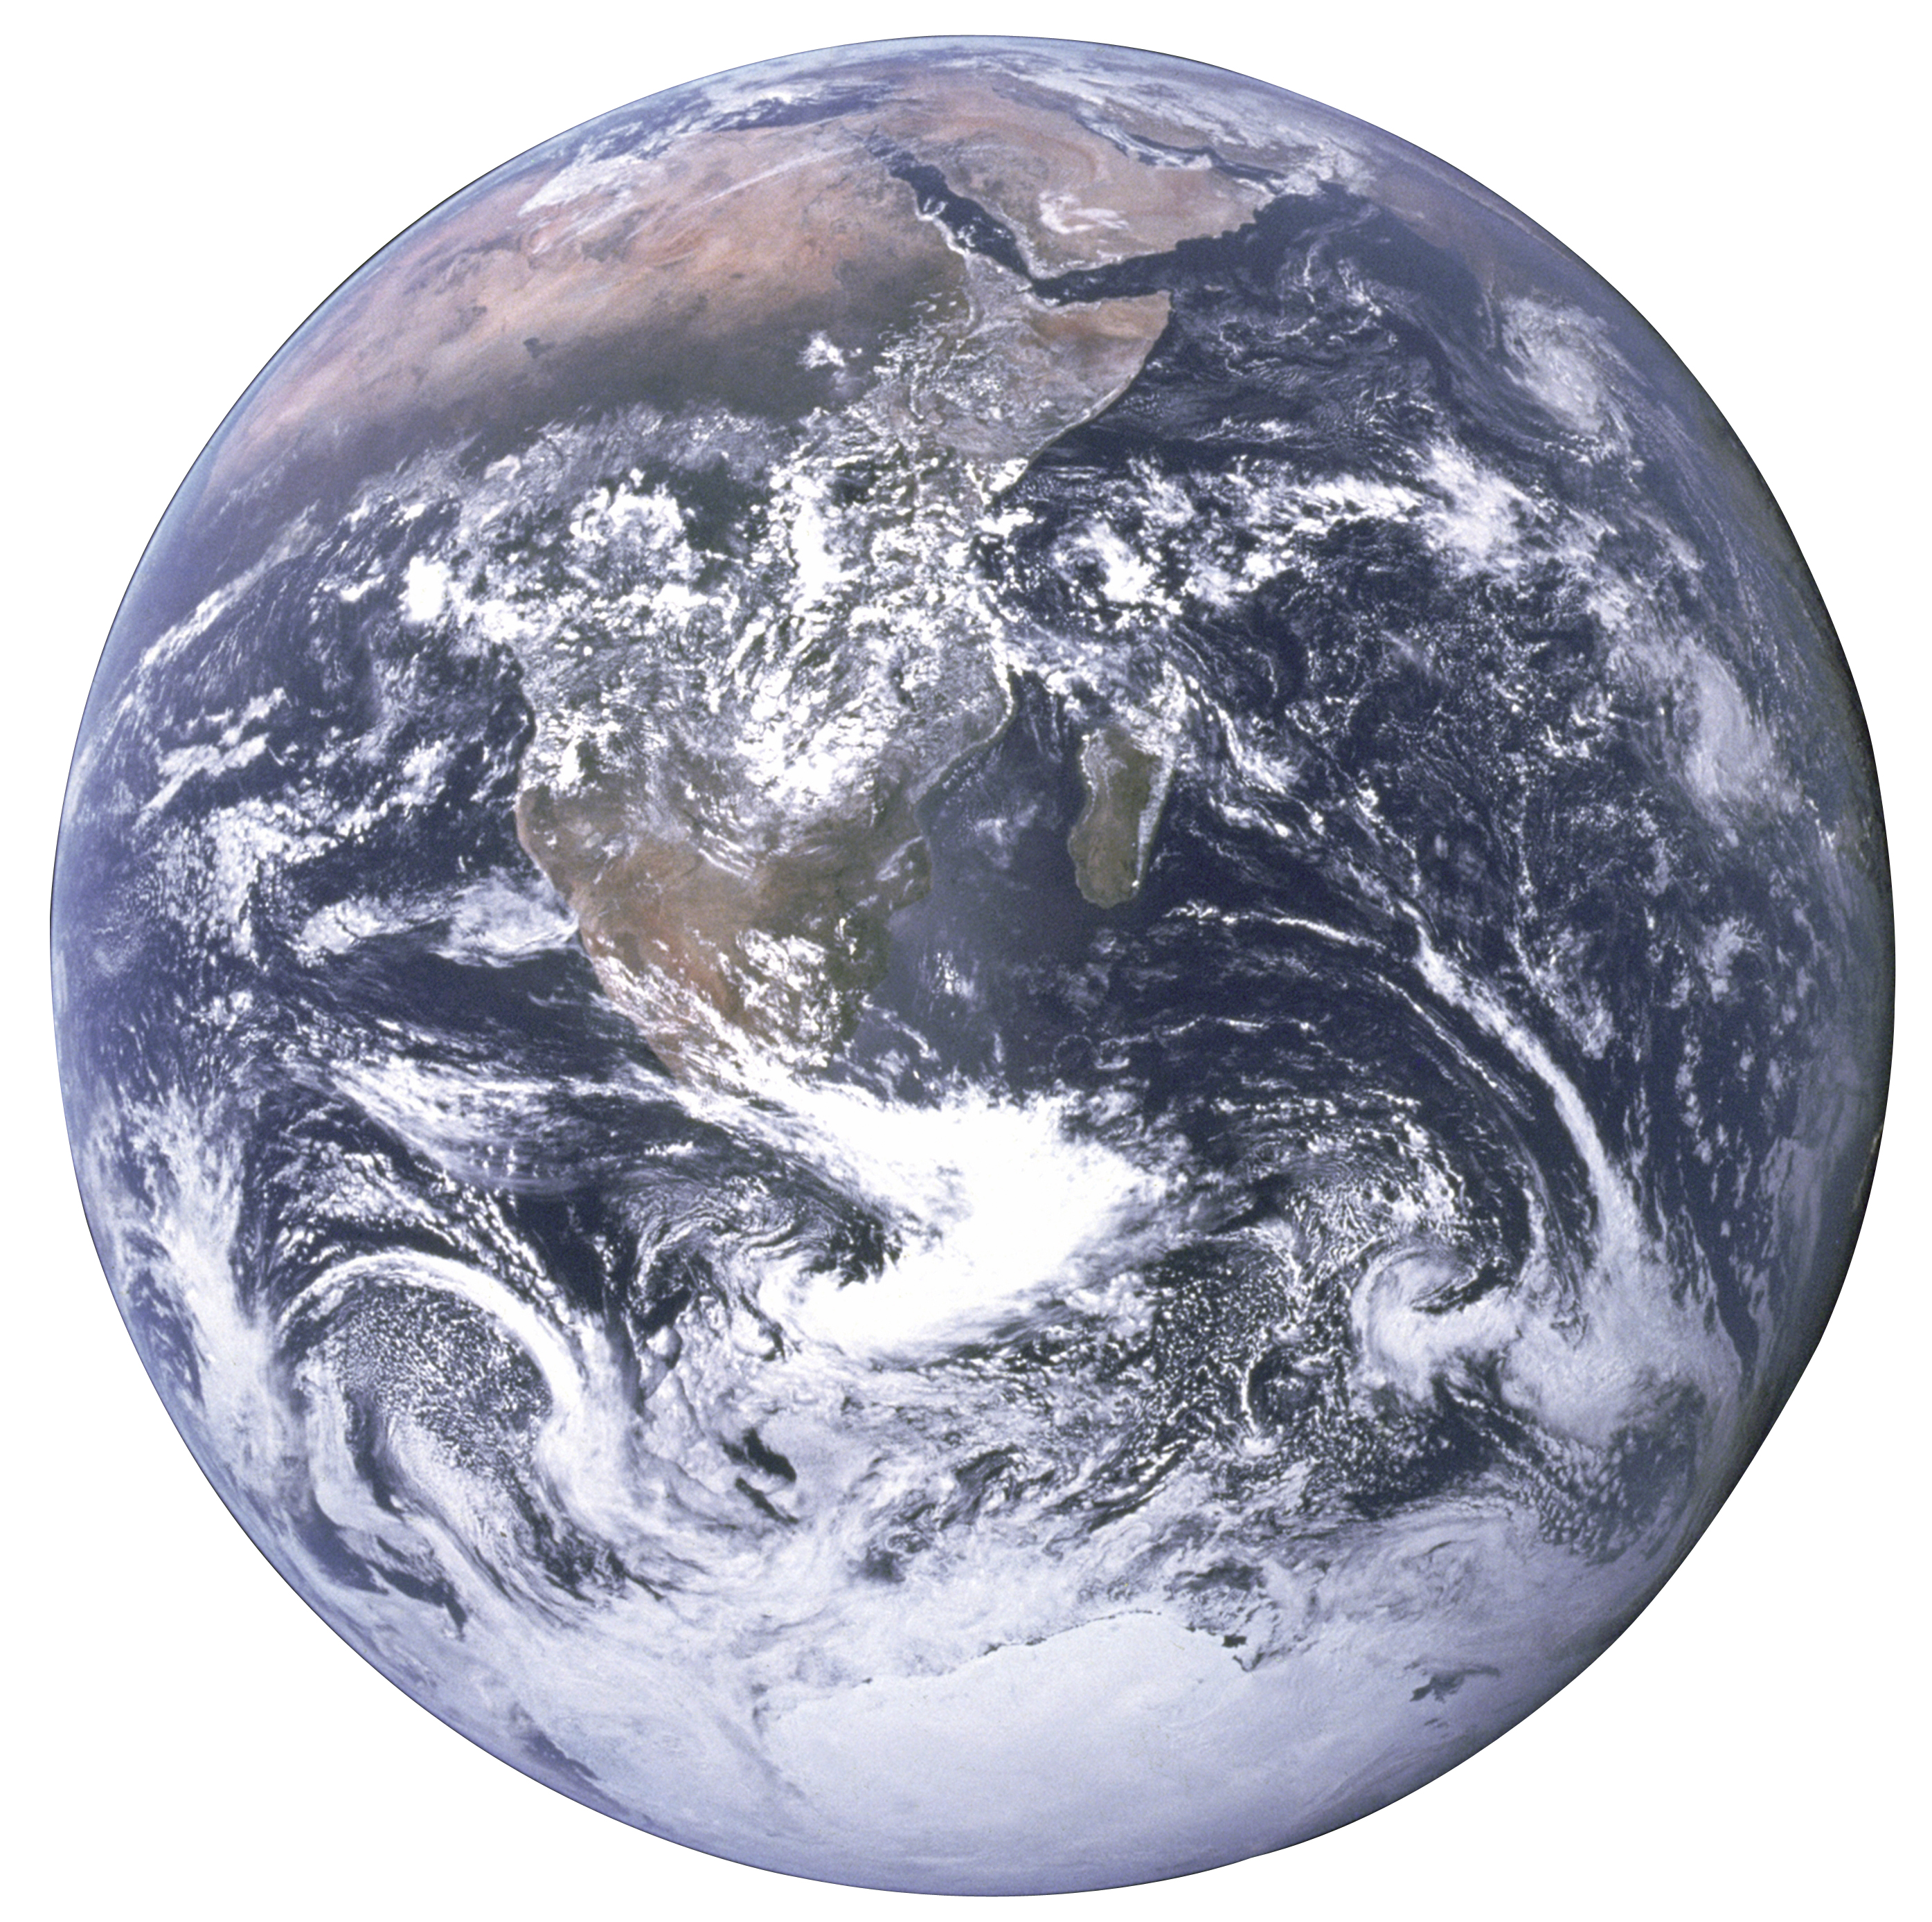 File:The Earth seen from Apollo 17 with transparent background.png - The Earth PNG